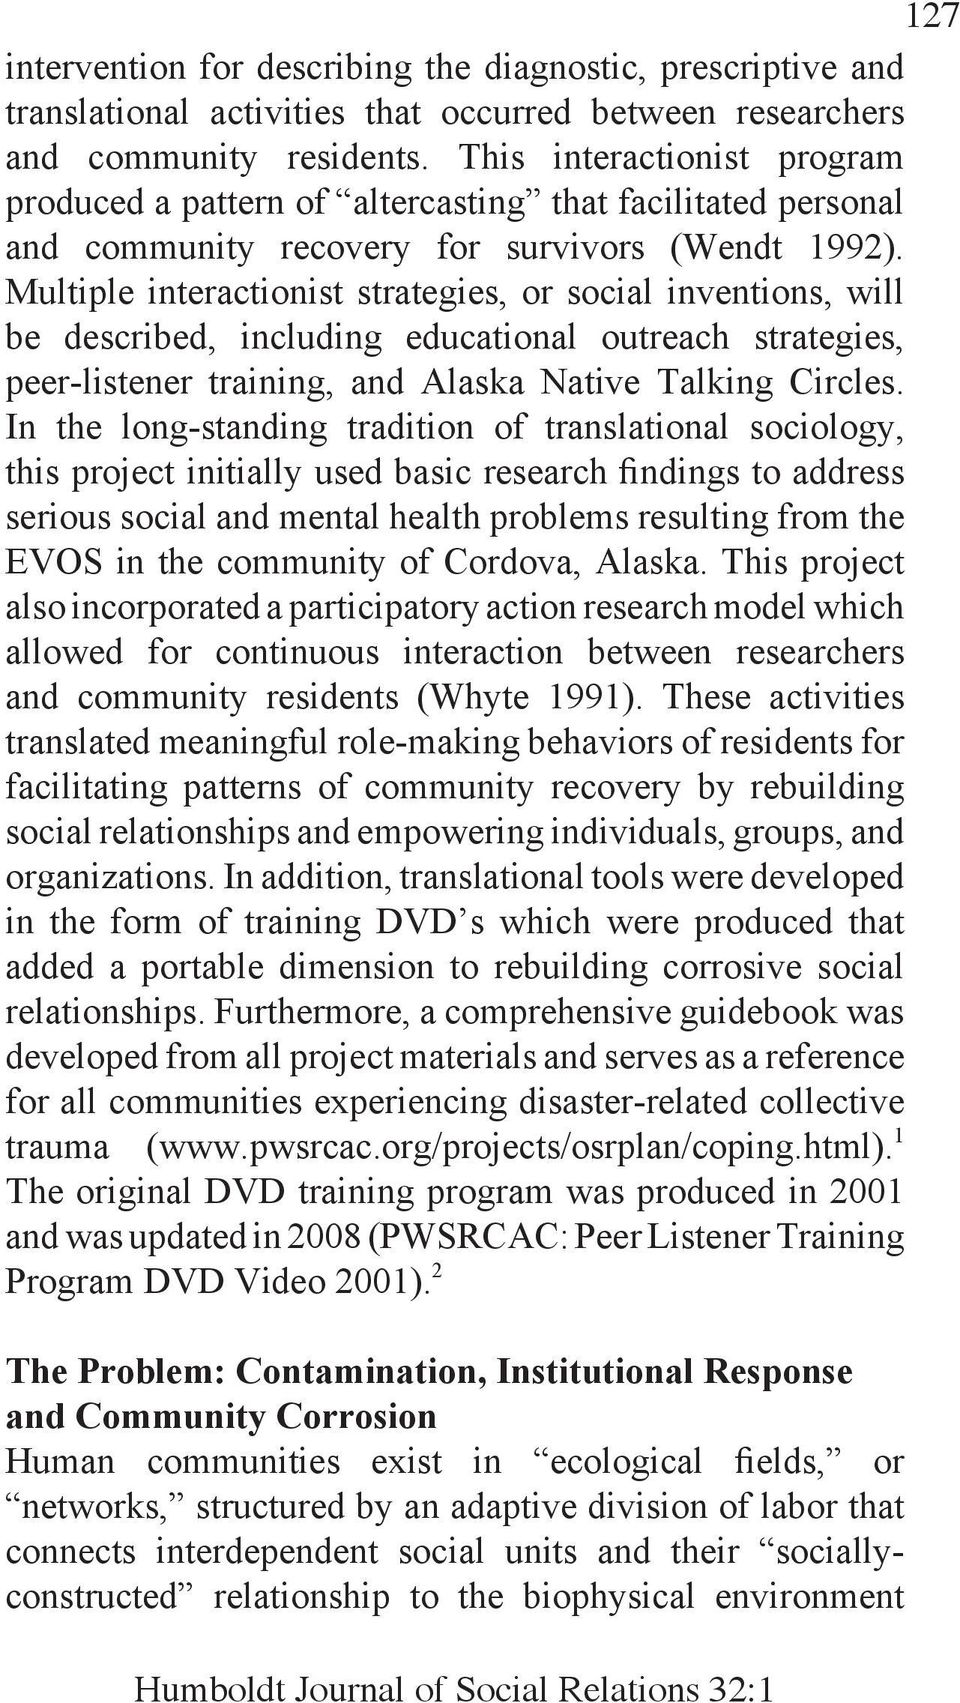 Multiple interactionist strategies, or social inventions, will be described, including educational outreach strategies, peer-listener training, and Alaska Native Talking Circles.